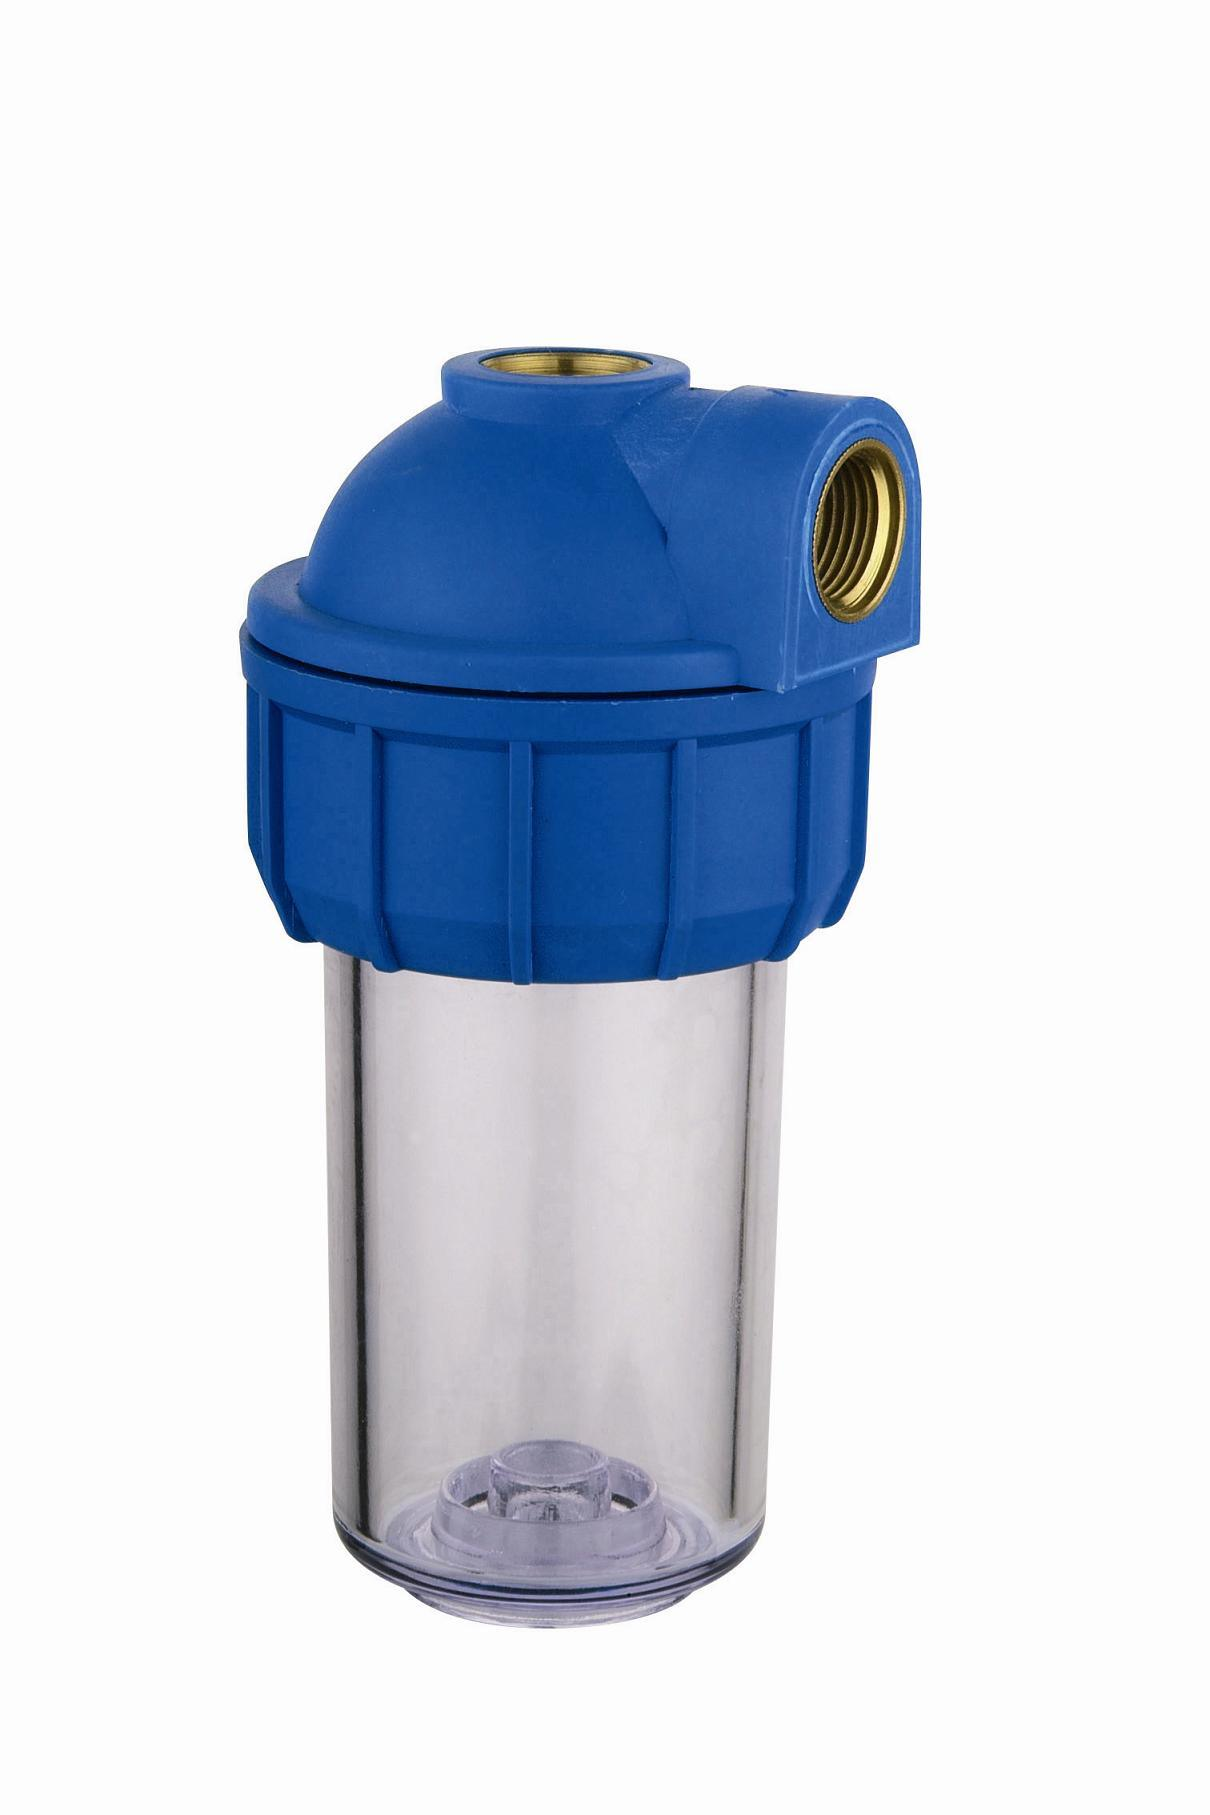 Check out our water filter system guide for your home and see how or how NOT a reverse osmosis system is good for your house!